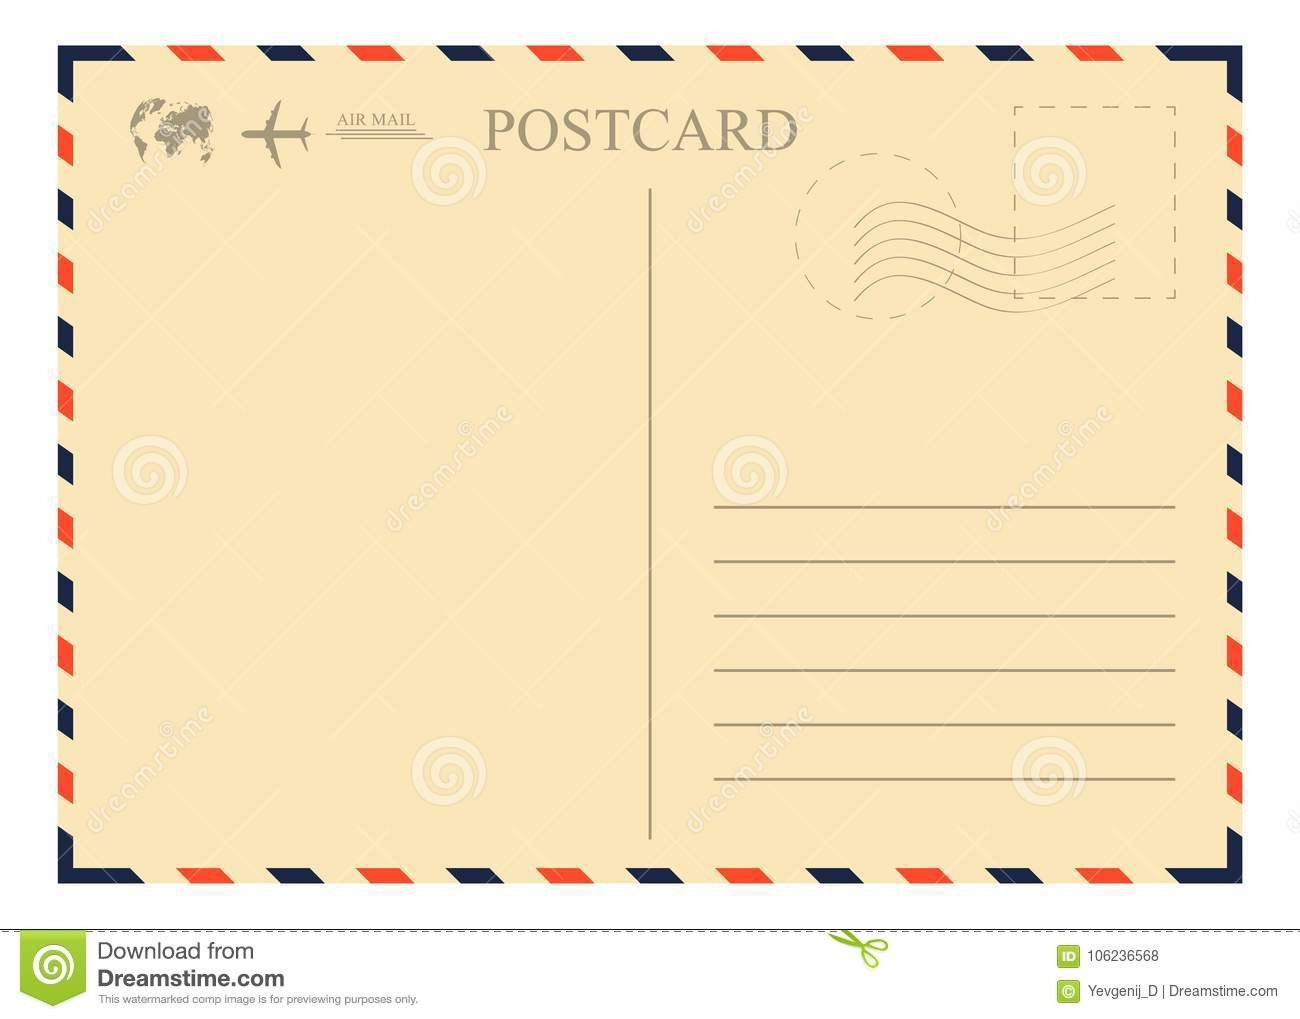 Air Mail Envelope Template Lovely Vintage Postcard Template Retro Airmail Envelope With Stamp In 2020 Postcard Template Envelope Template Envelope Design Template